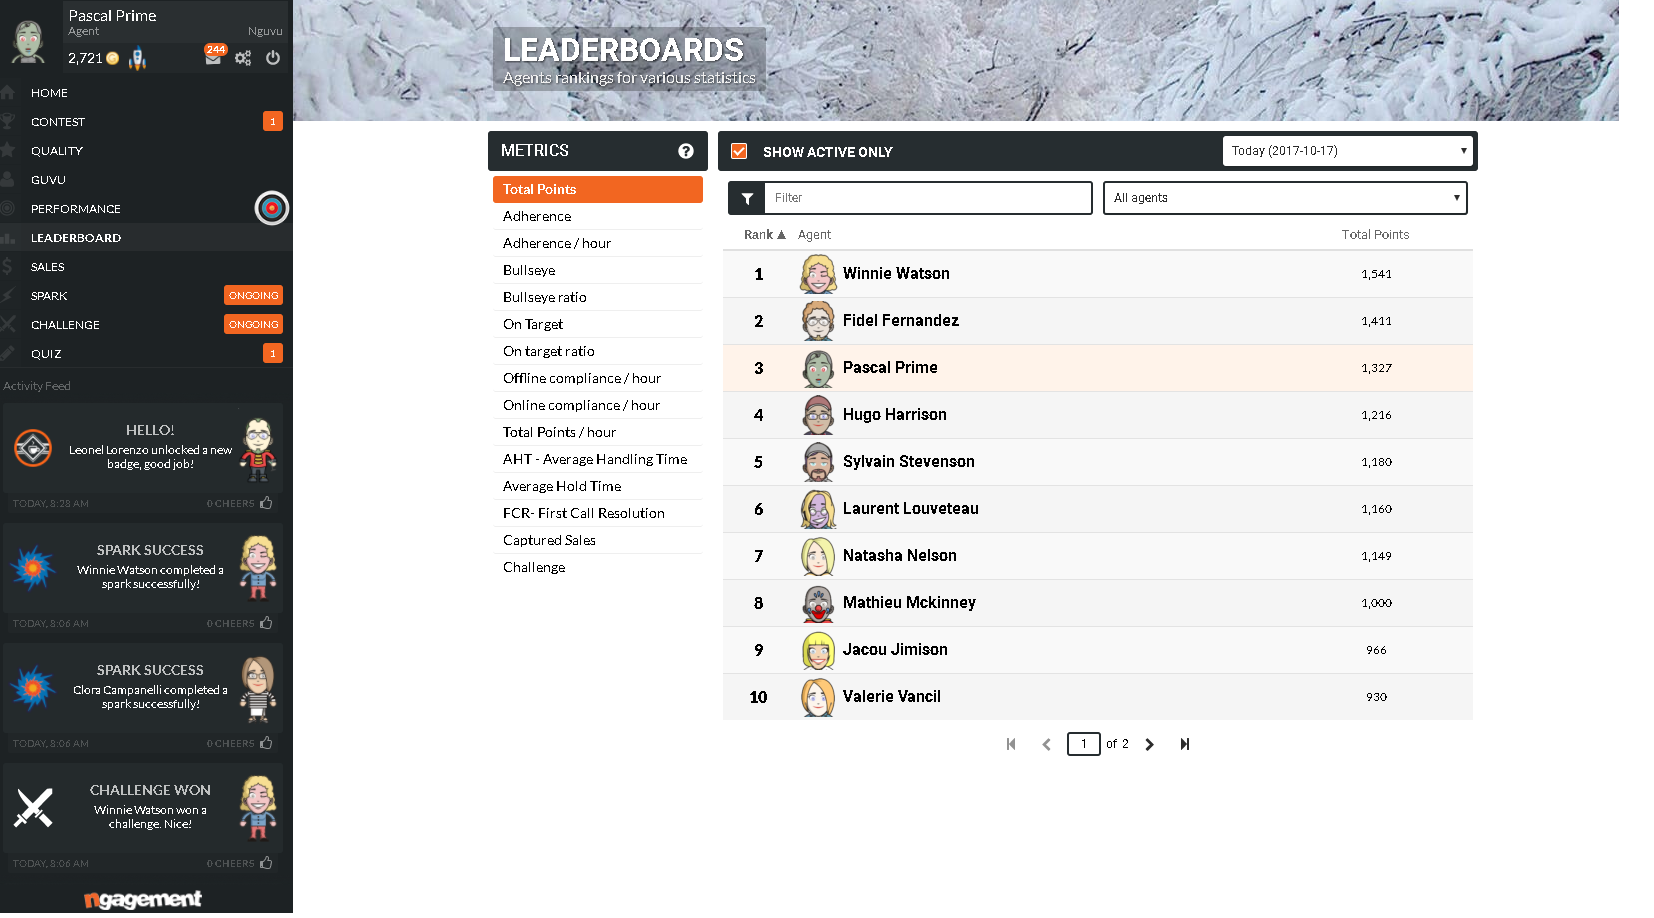 contact center KPIs leaderboard